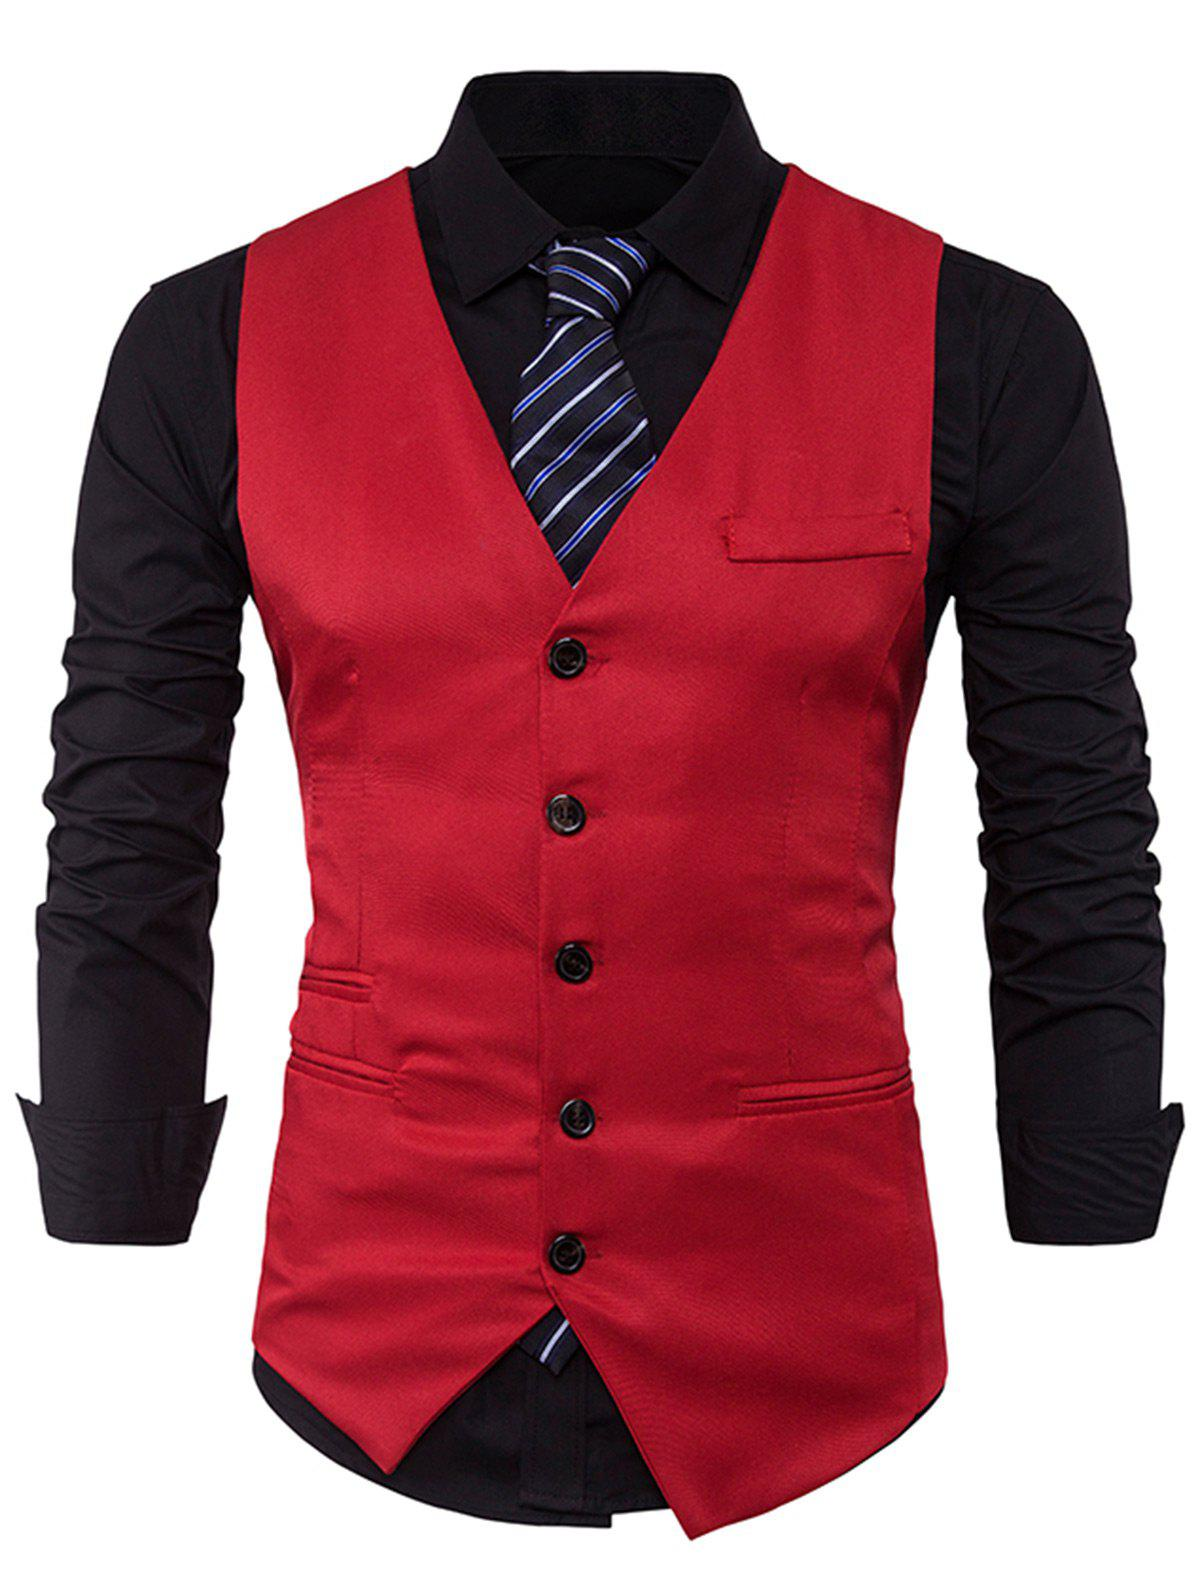 Single Breasted V Neck Edging WaistcoatMEN<br><br>Size: L; Color: RED; Material: Cotton,Polyester; Style: Fashion; Shirt Length: Regular; Collar: V-Neck; Thickness: Standard; Closure Type: Single Breasted; Weight: 0.2500kg; Package Contents: 1 x Waistcoat;